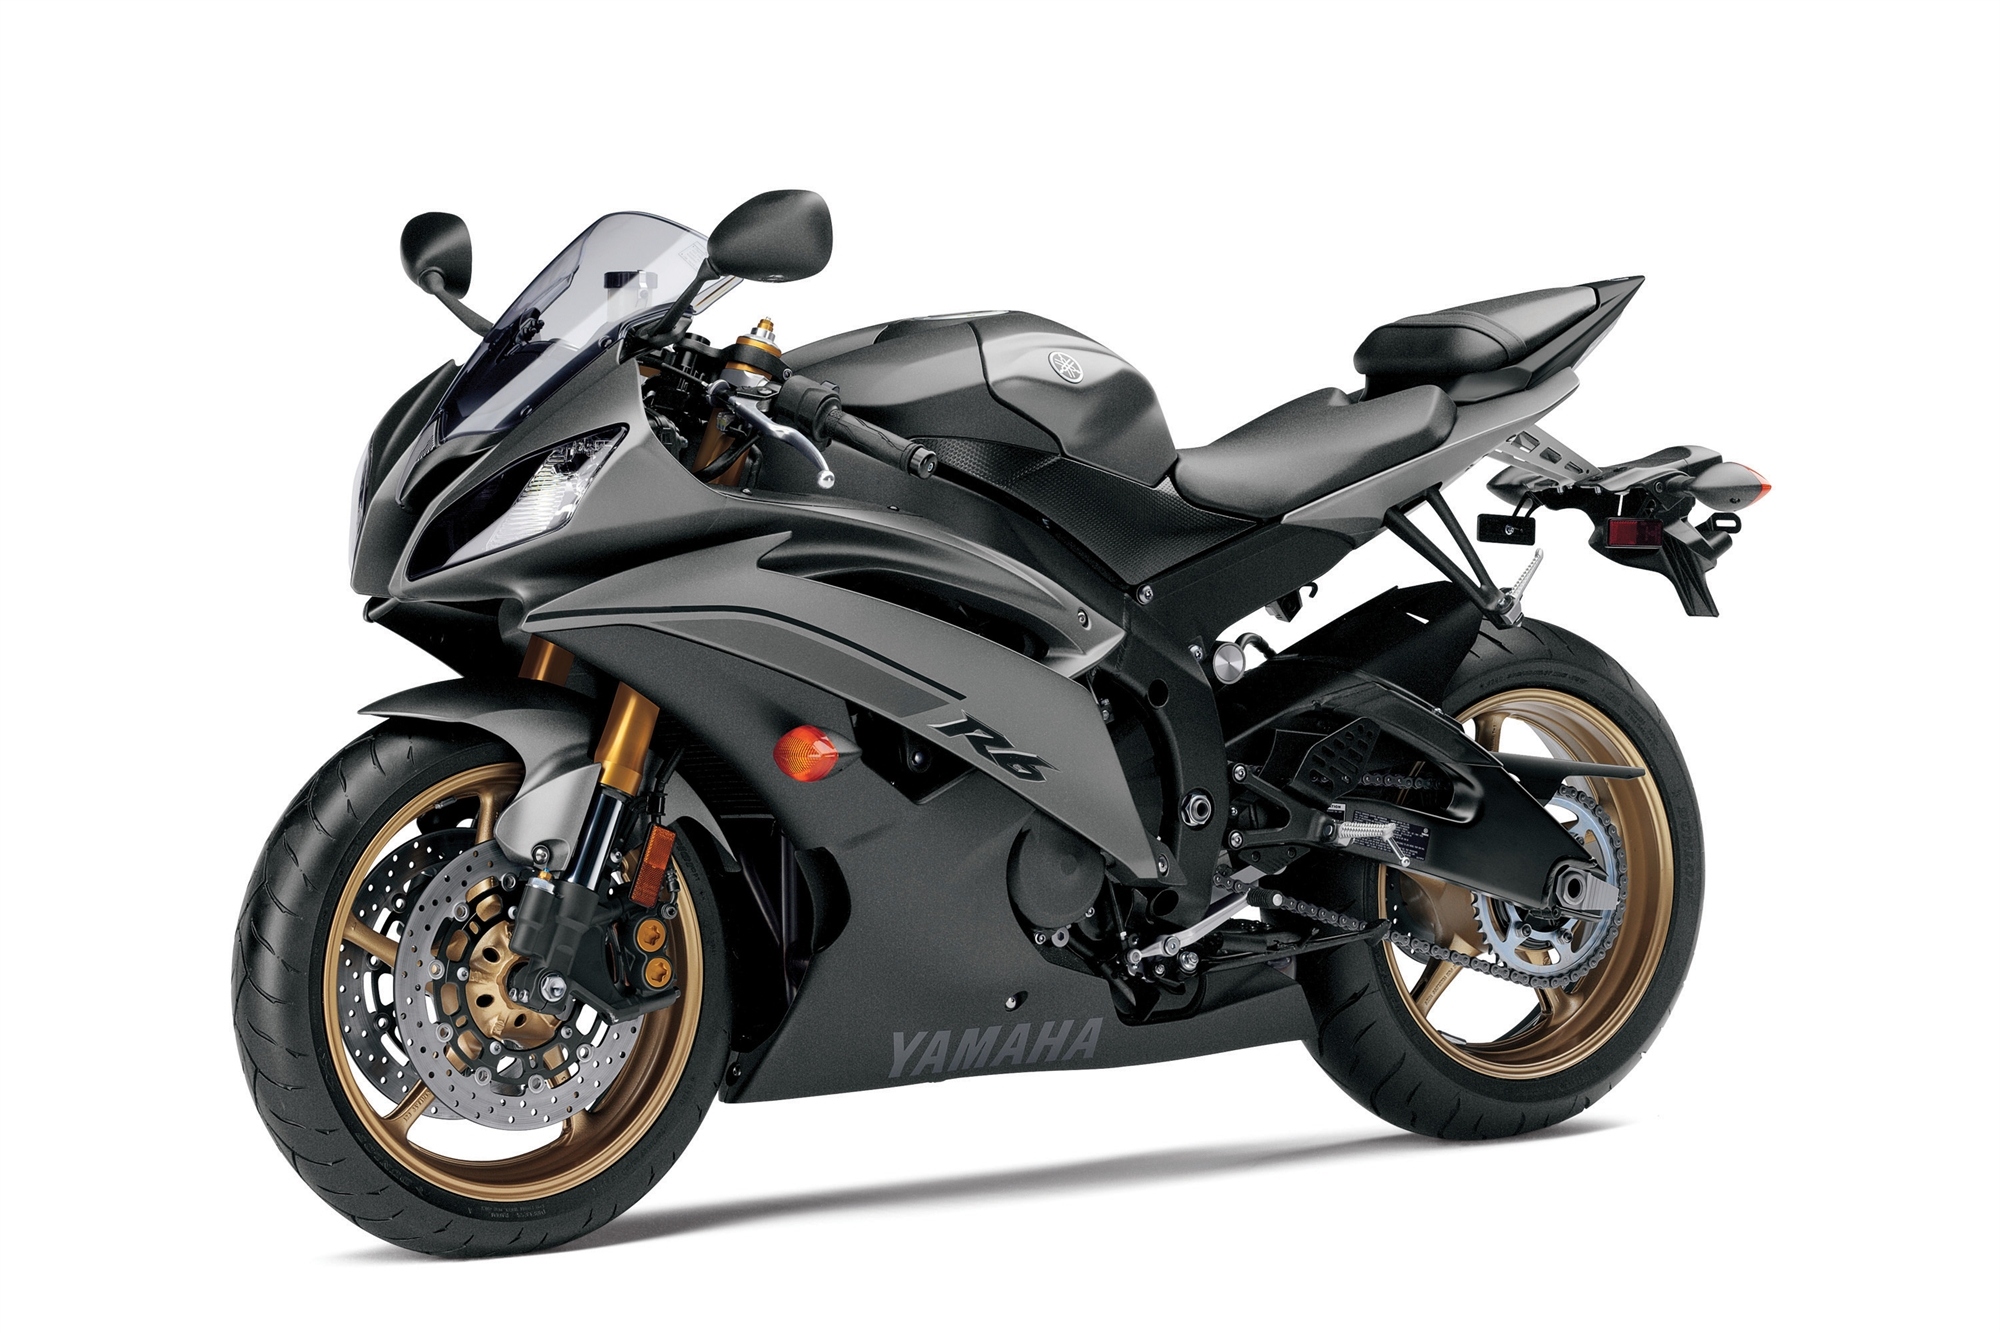 yamaha r6 black 2014 - photo #8